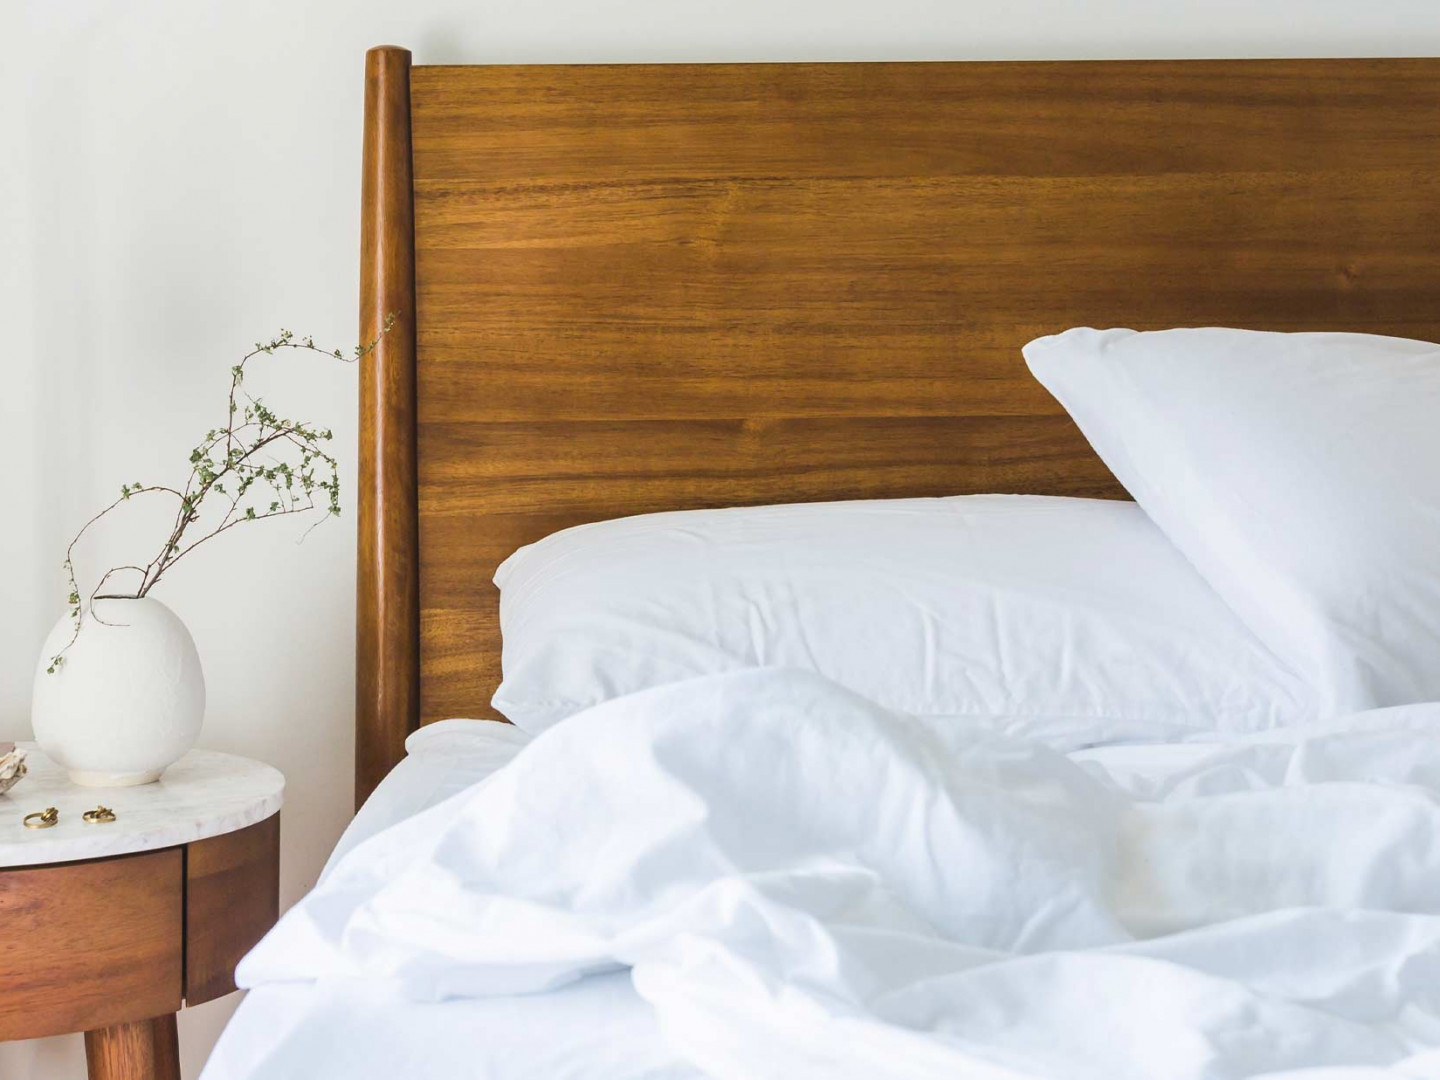 What should you know about bed bugs?